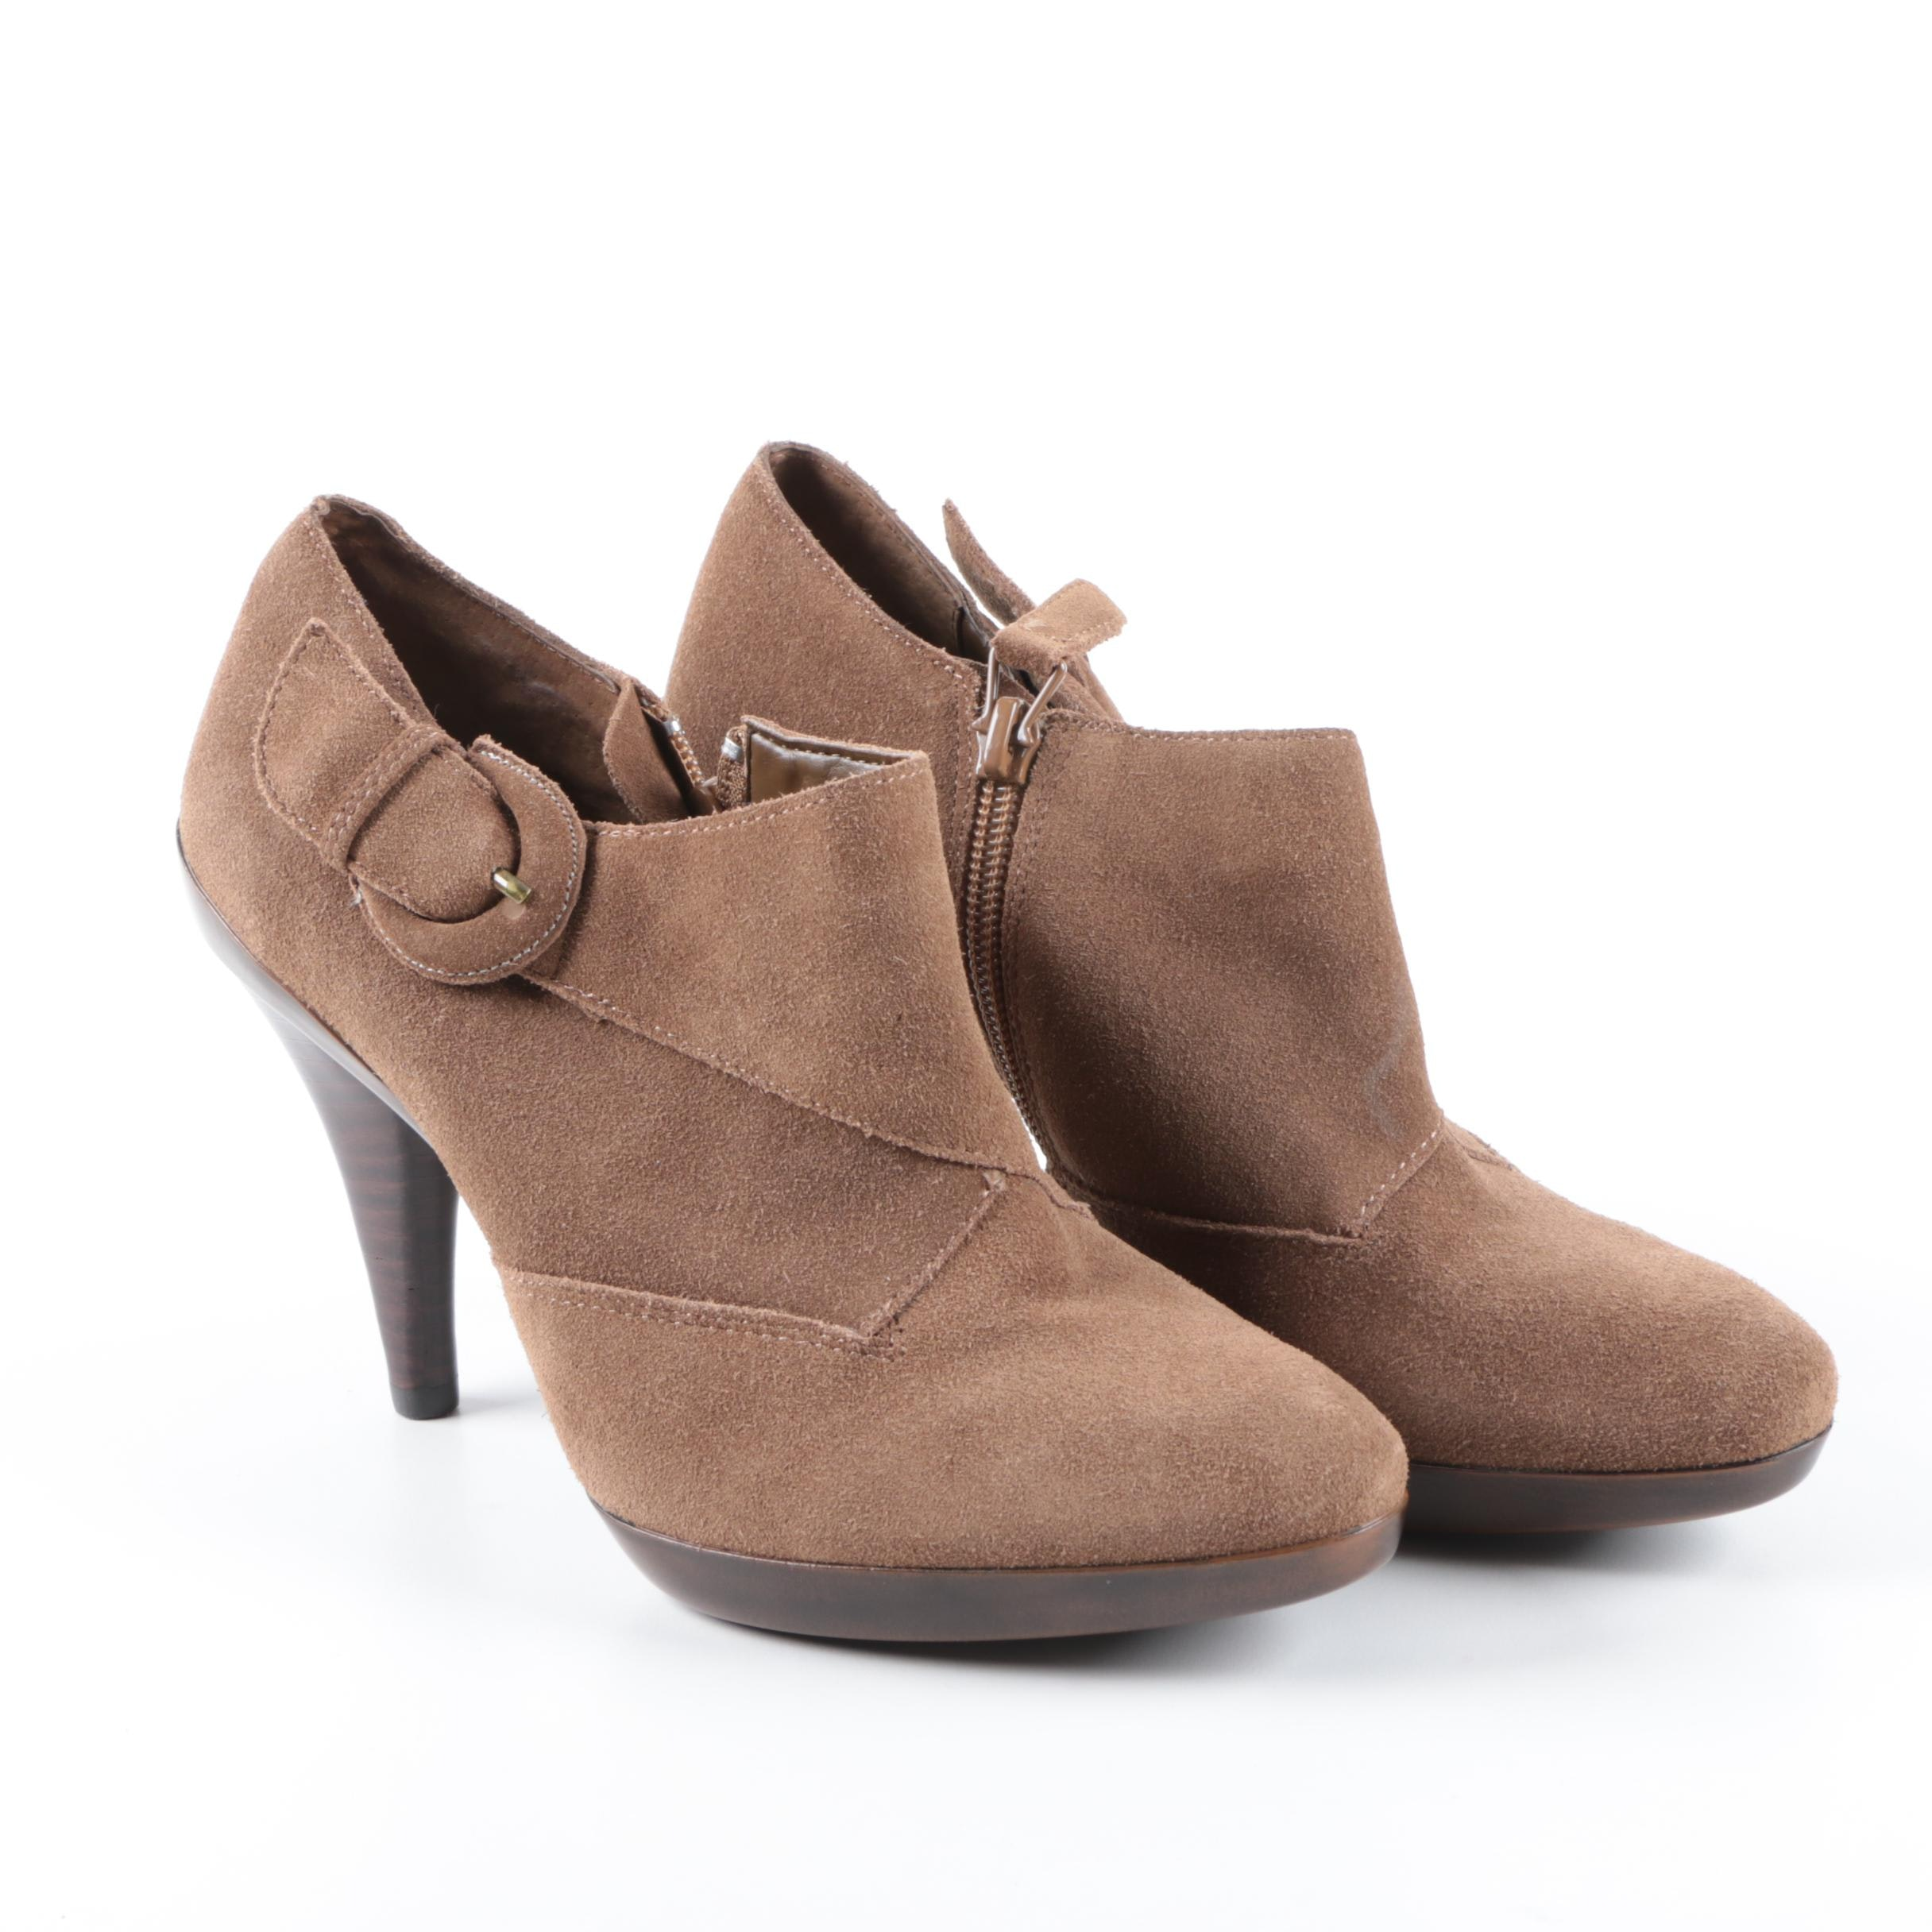 Joan & David Brown Suede Booties